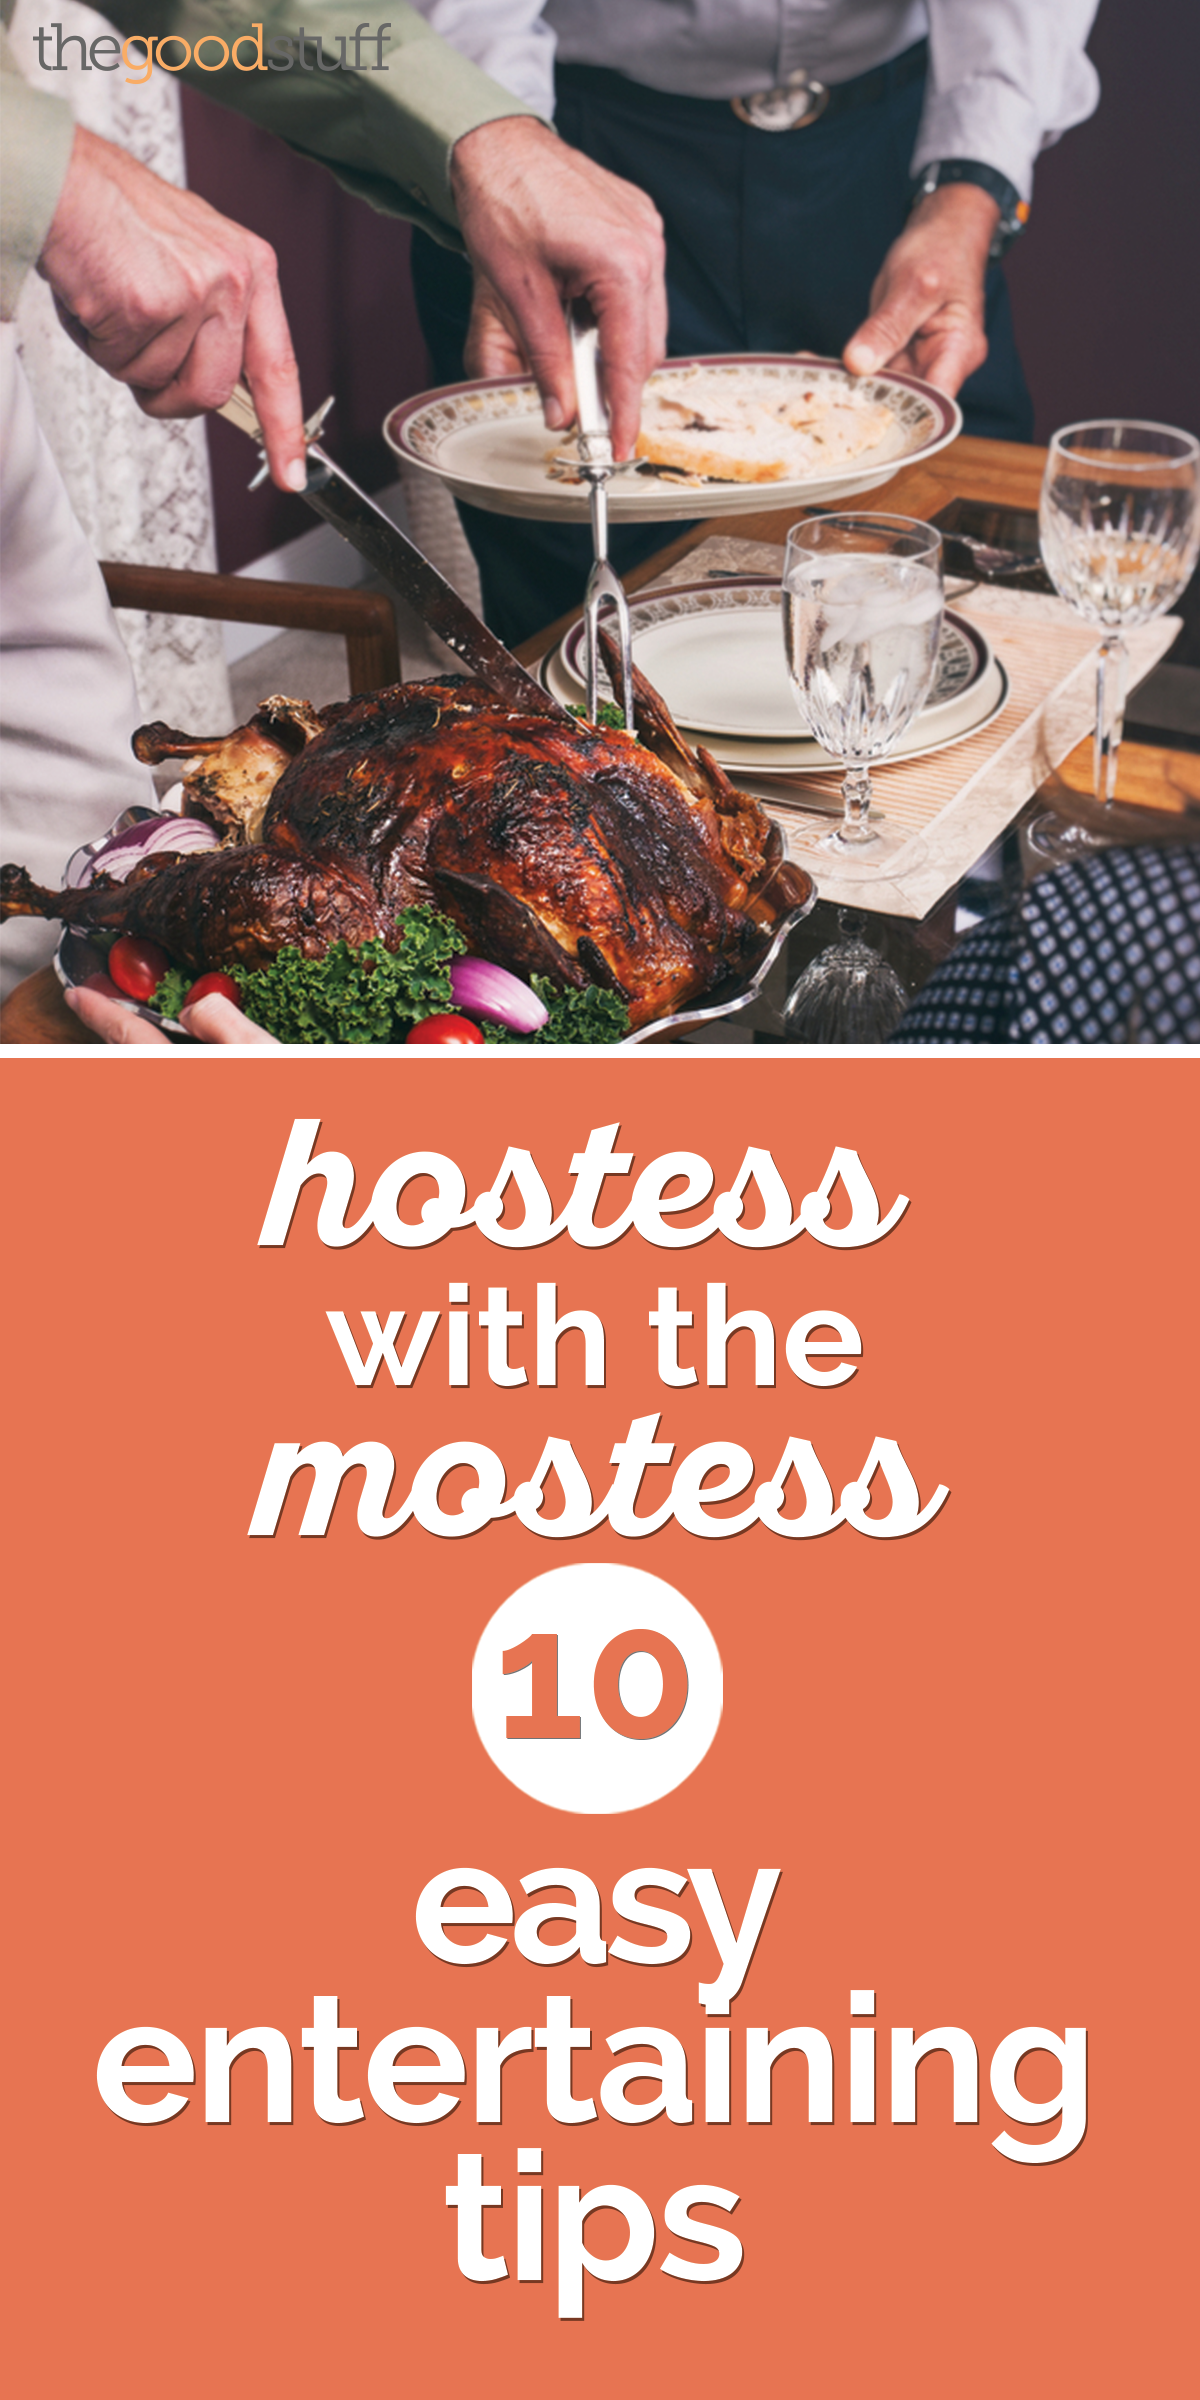 Hostess with the Mostess: 10 Easy Entertaining Tips | thegoodstuff